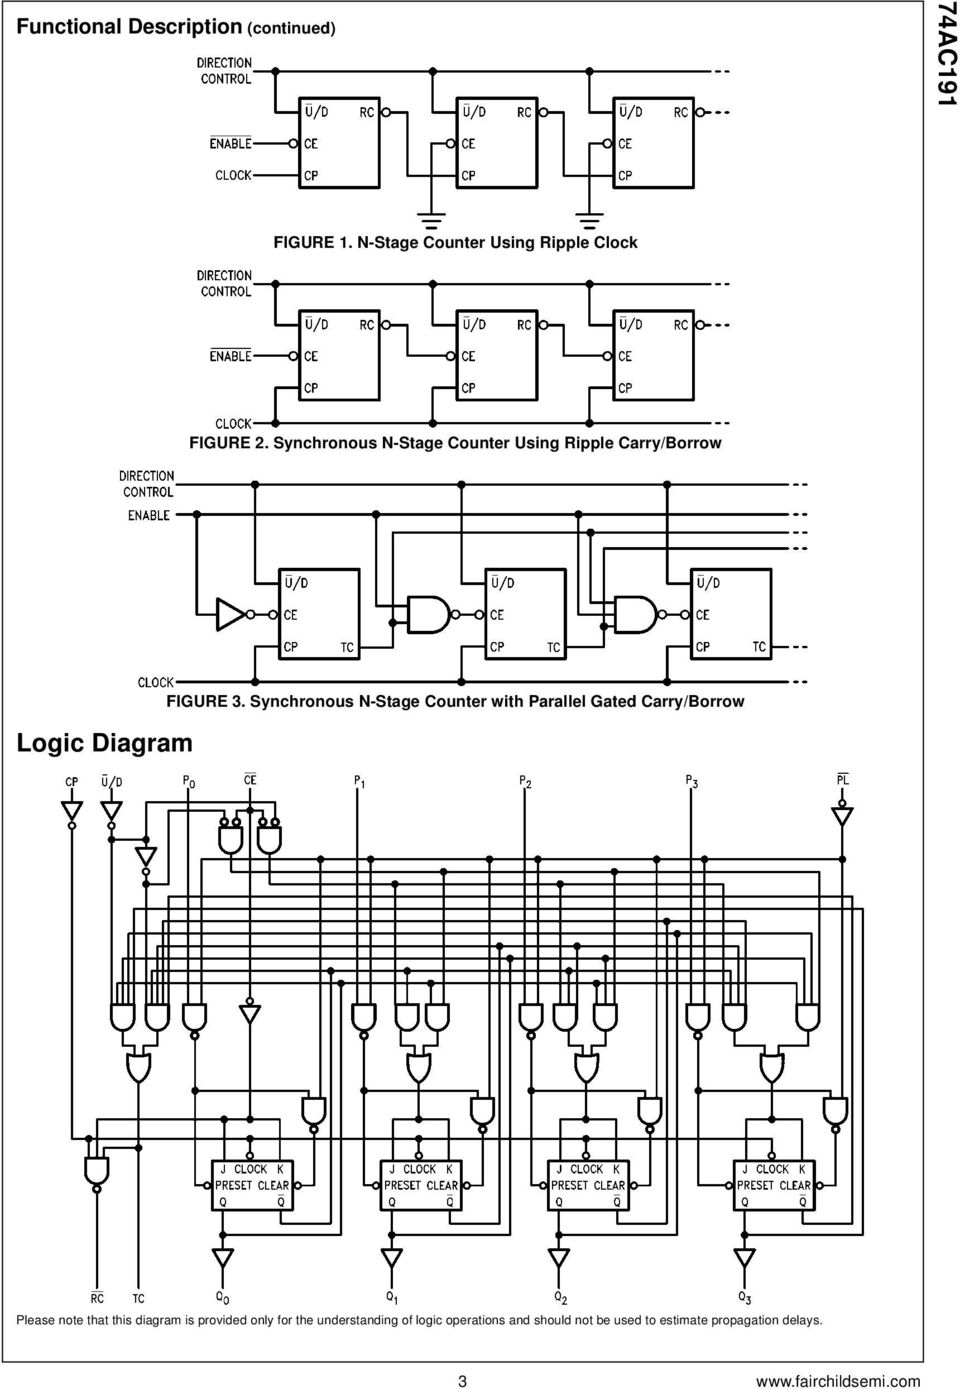 Synchronous N-Stage Counter with Parallel Gated Carry/Borrow Please note that this diagram is